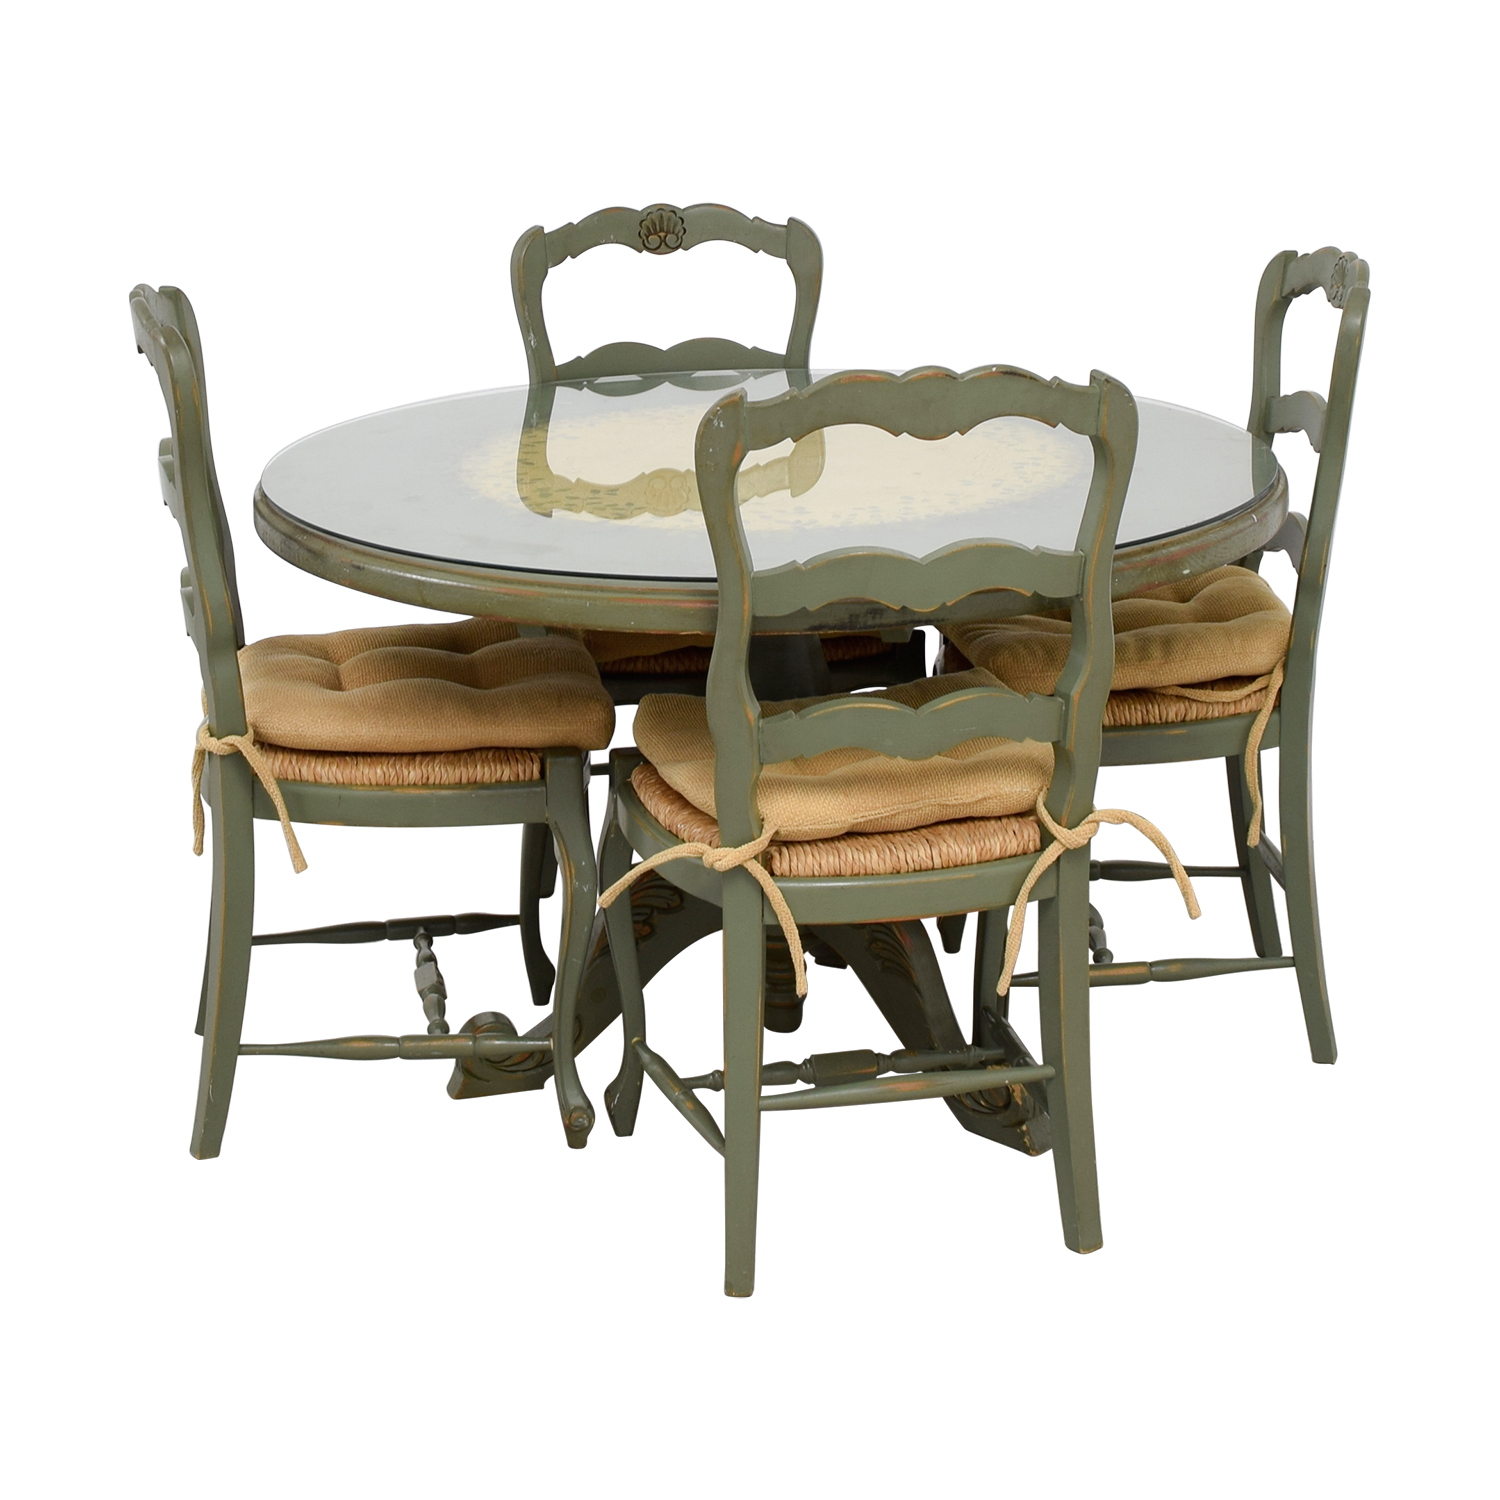 88 off hand painted country style kitchen table and for Painted kitchen chairs